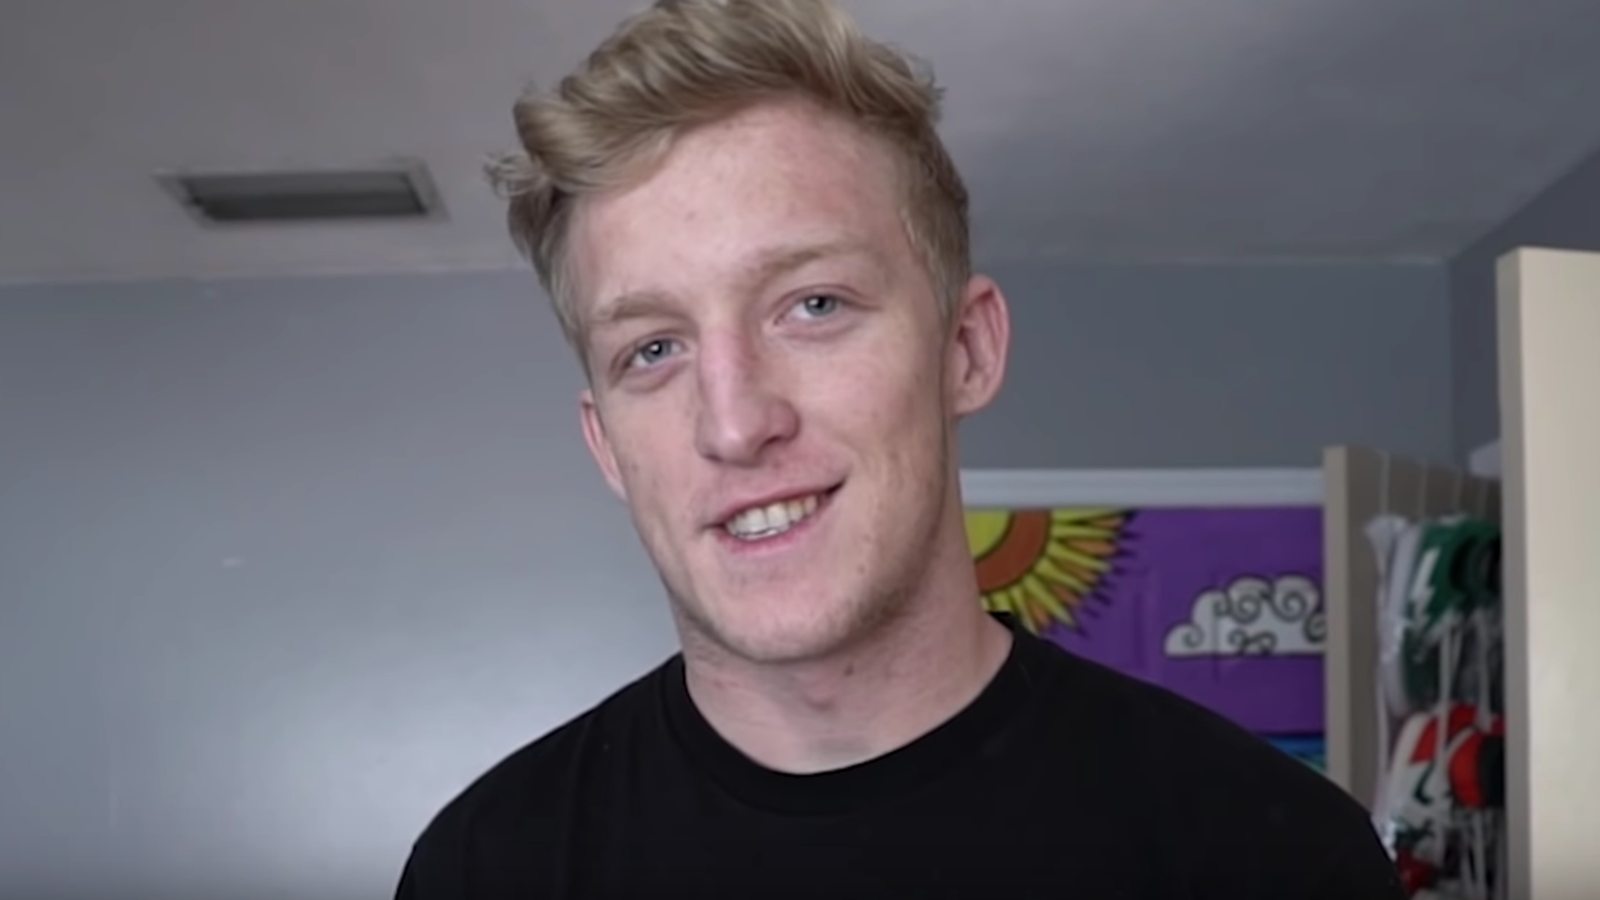 Popular Streamer Tfue's Use Of A Racial Slur Could Be His Last Strike On Twitch